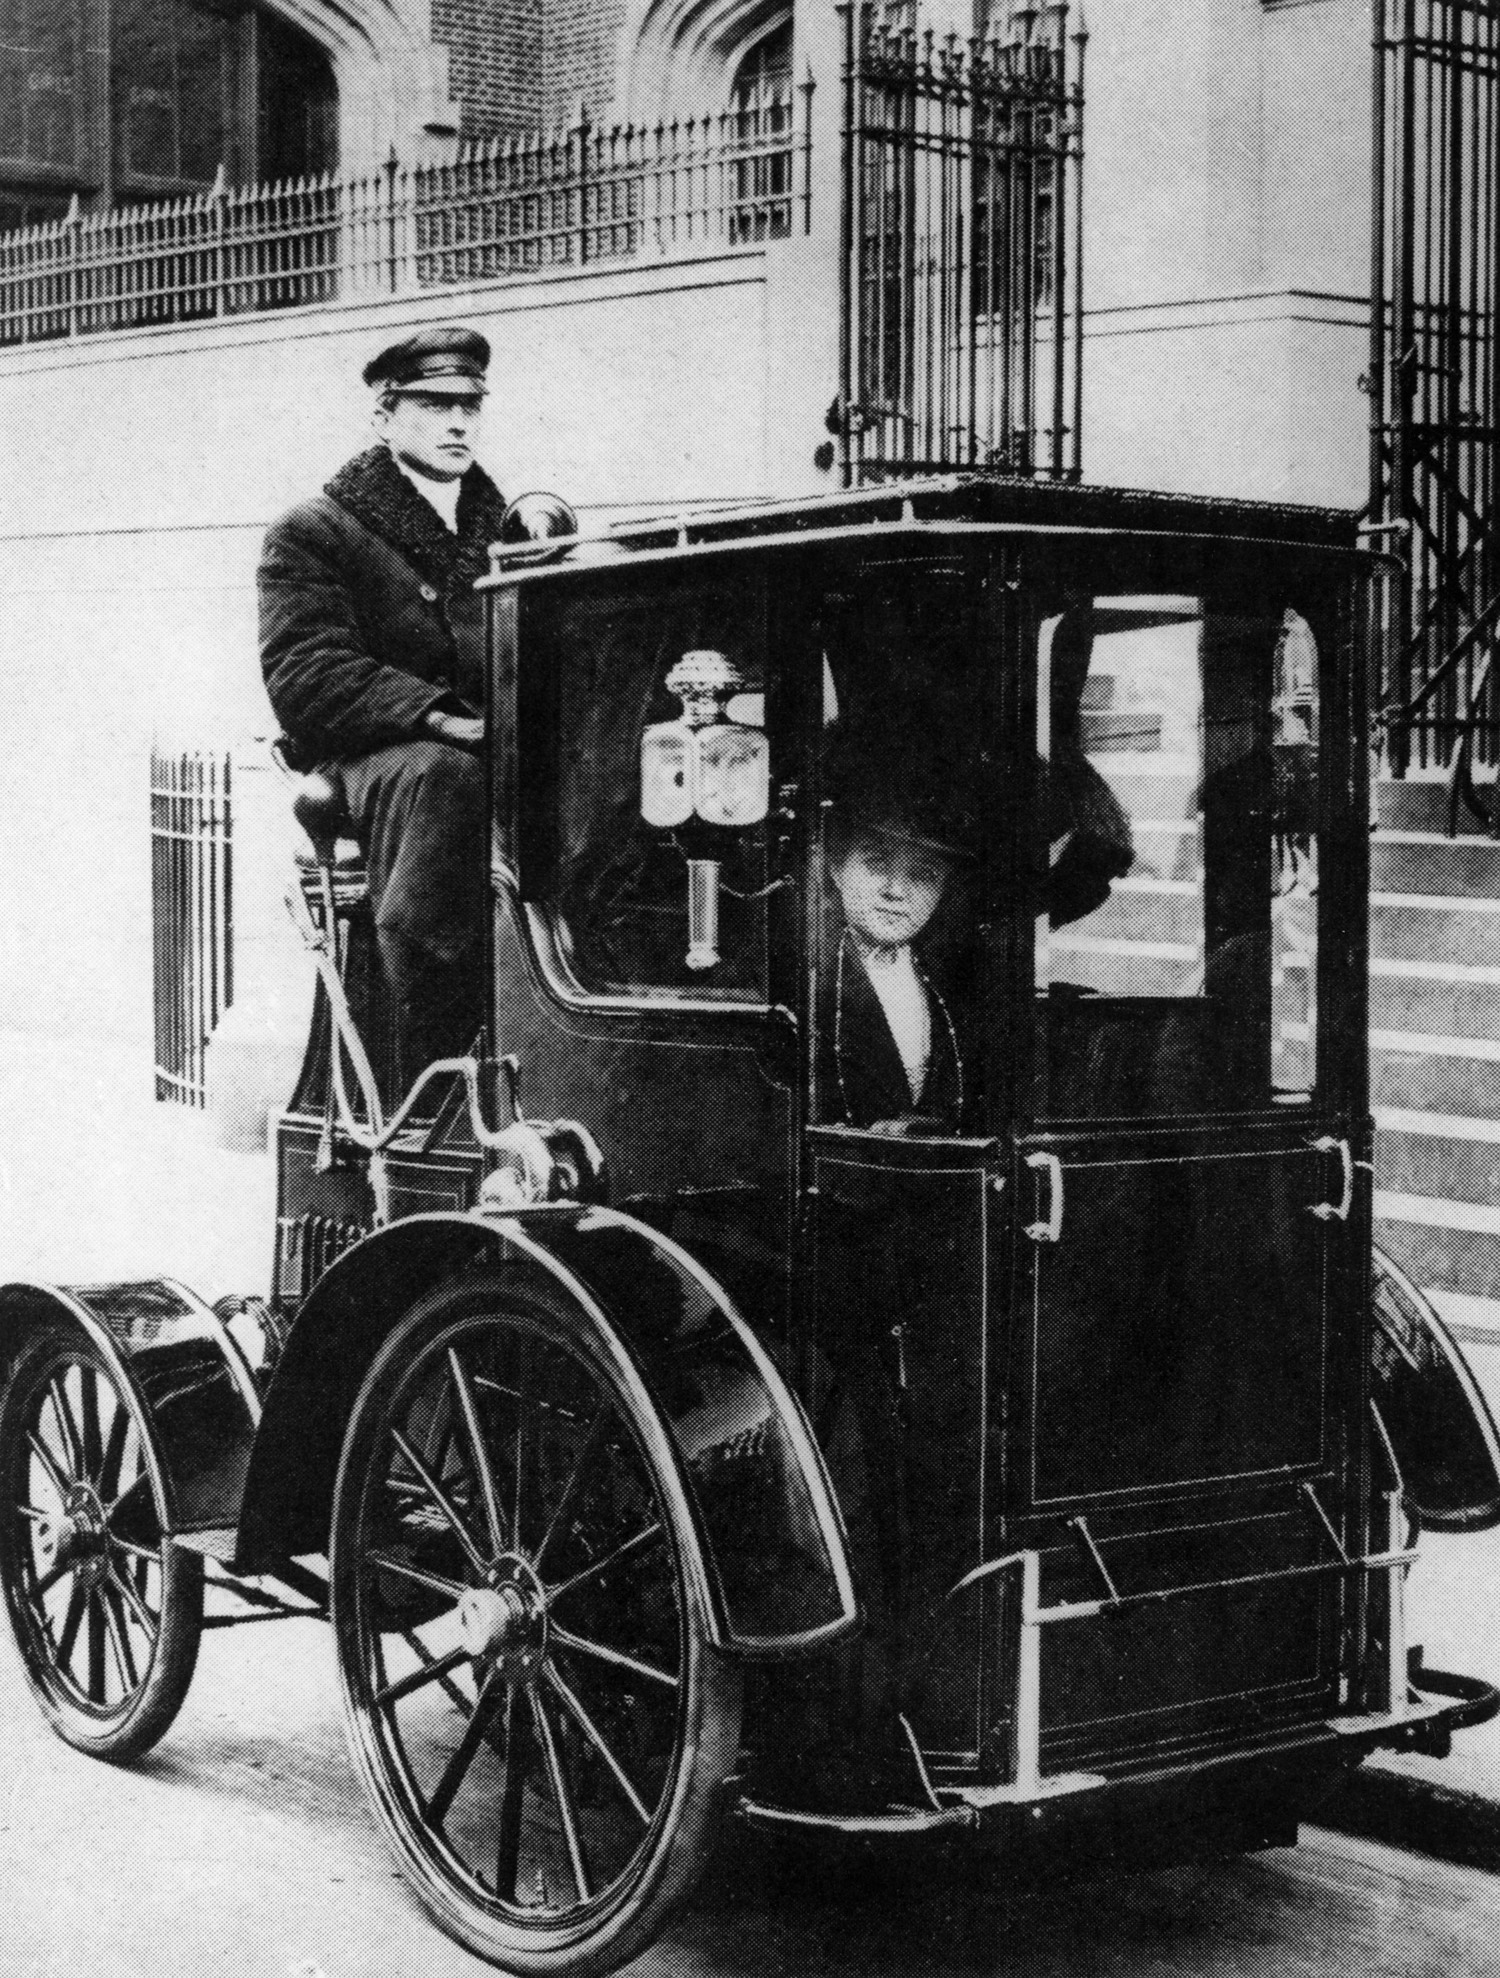 Woman passenger in a 1910 taxi cab, New York.